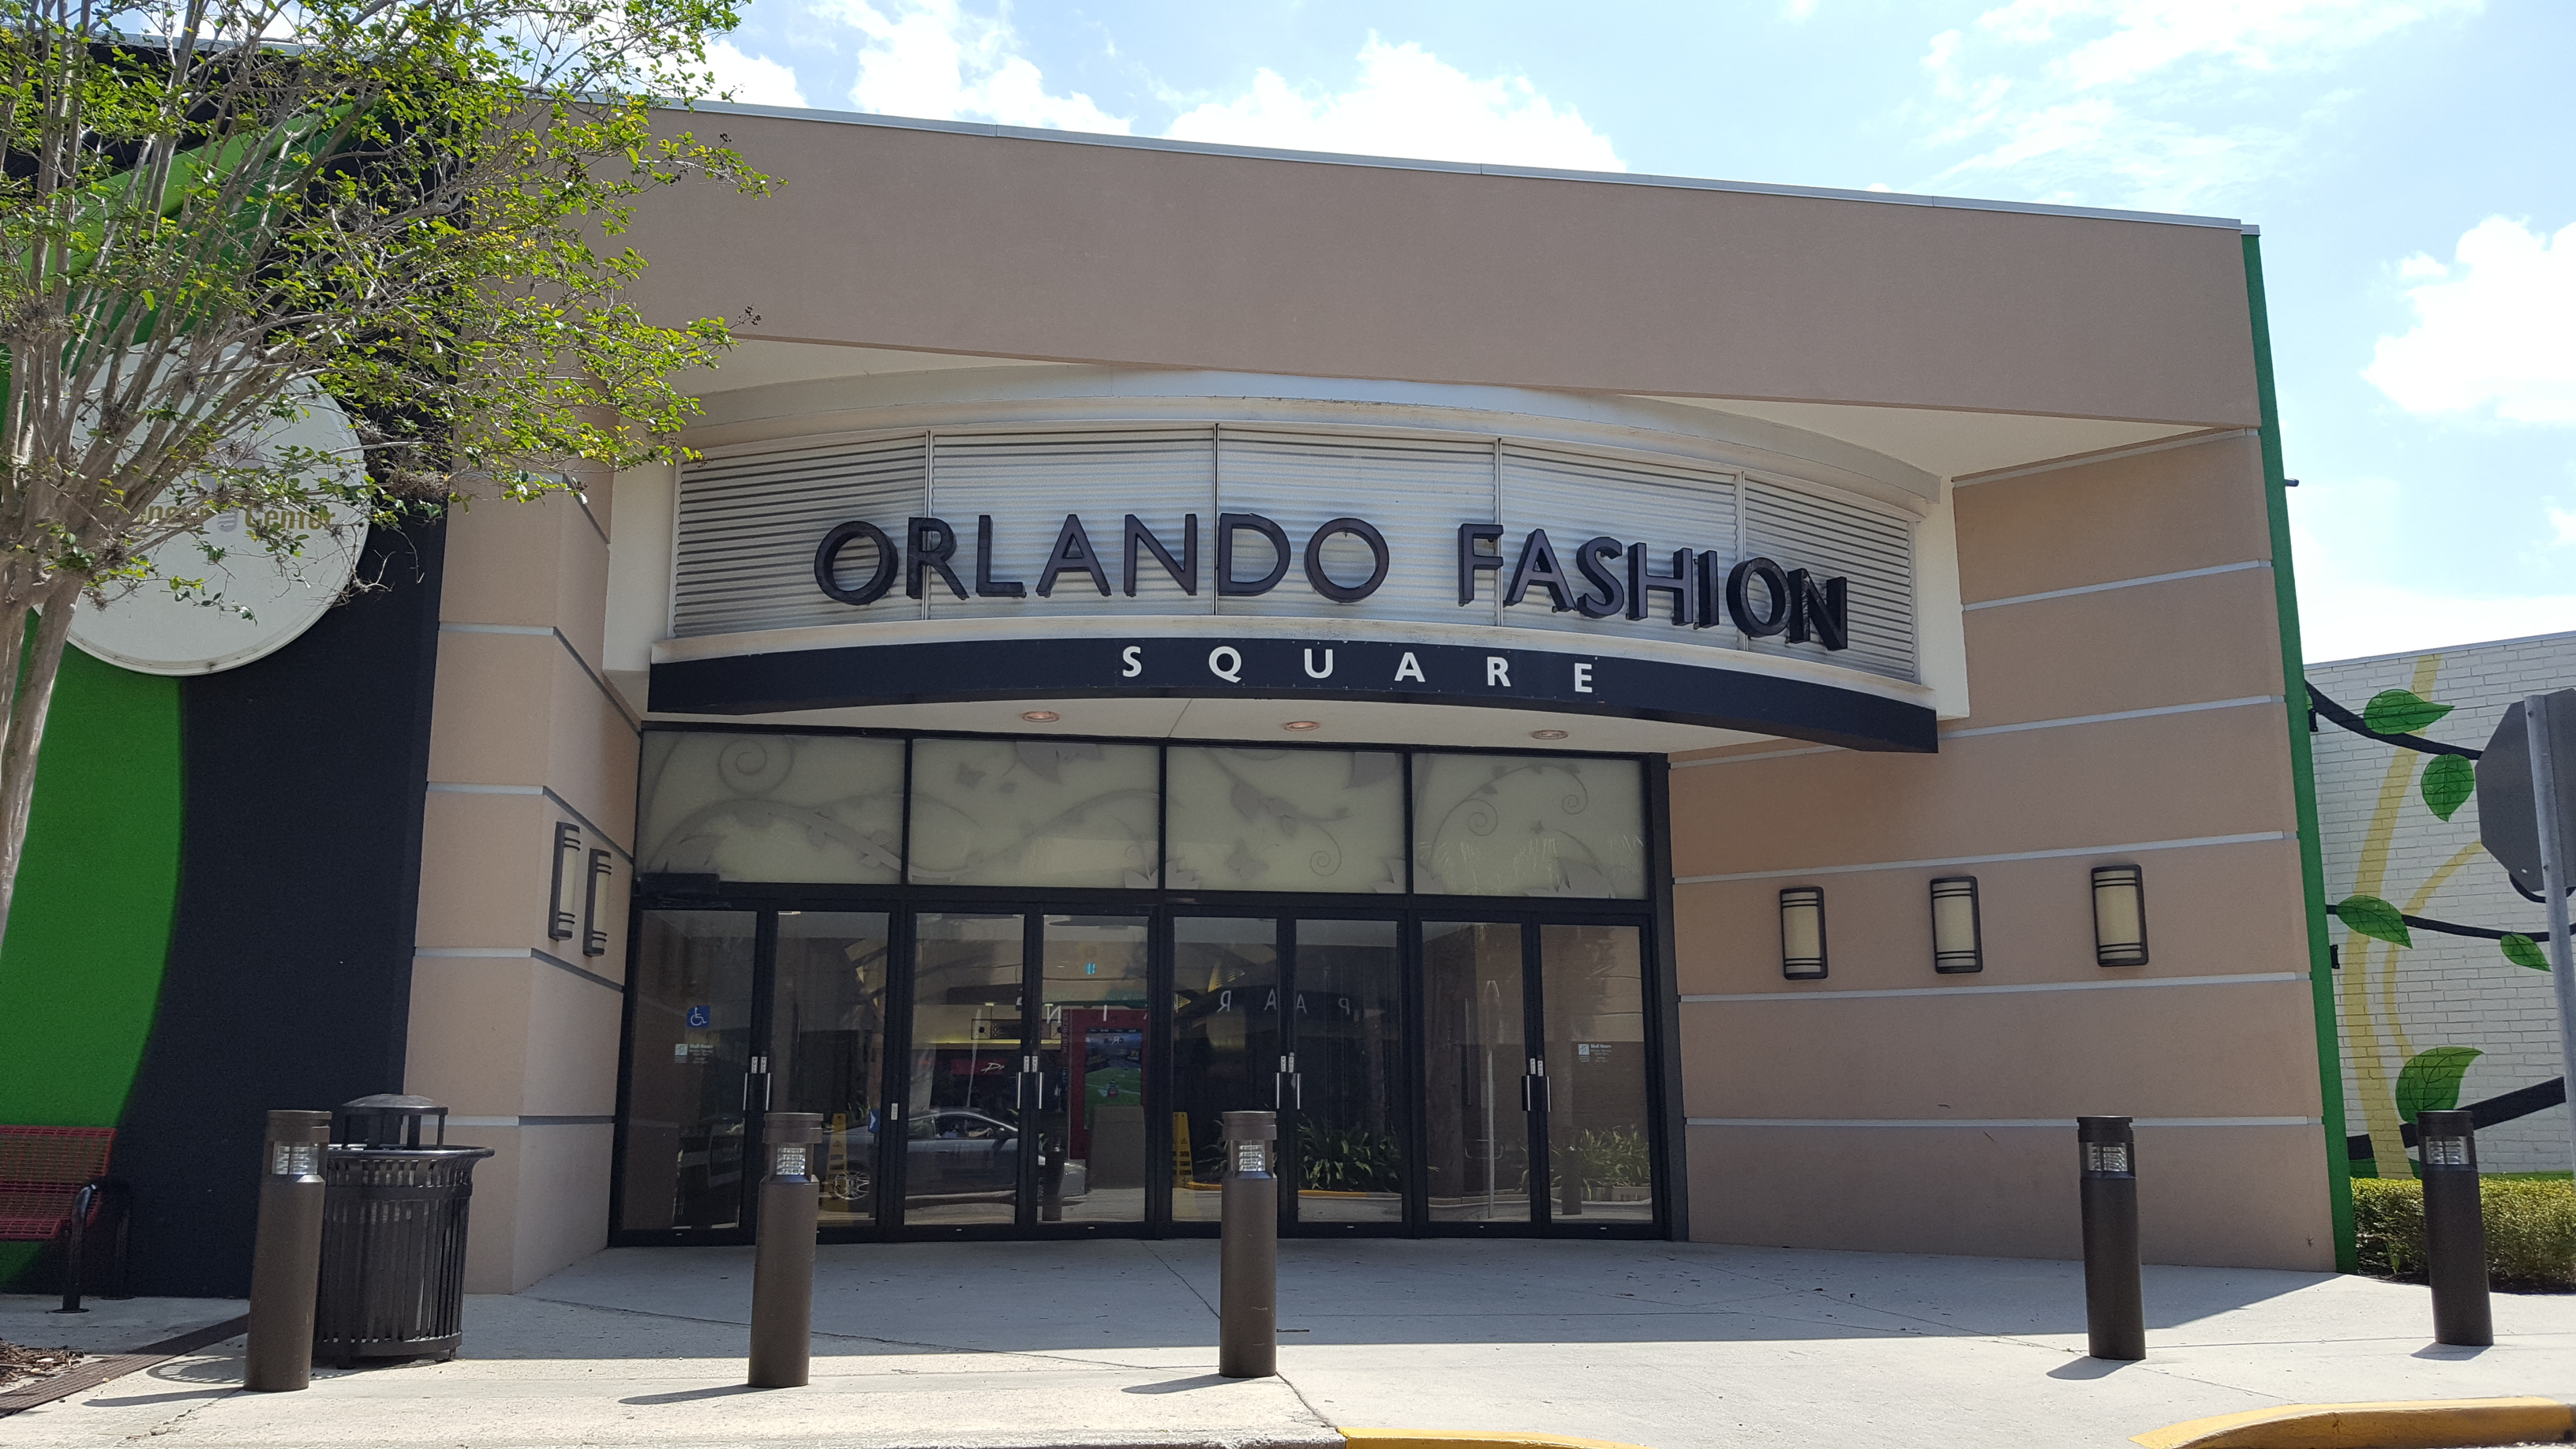 Orlando Fashion Square , Wikipedia